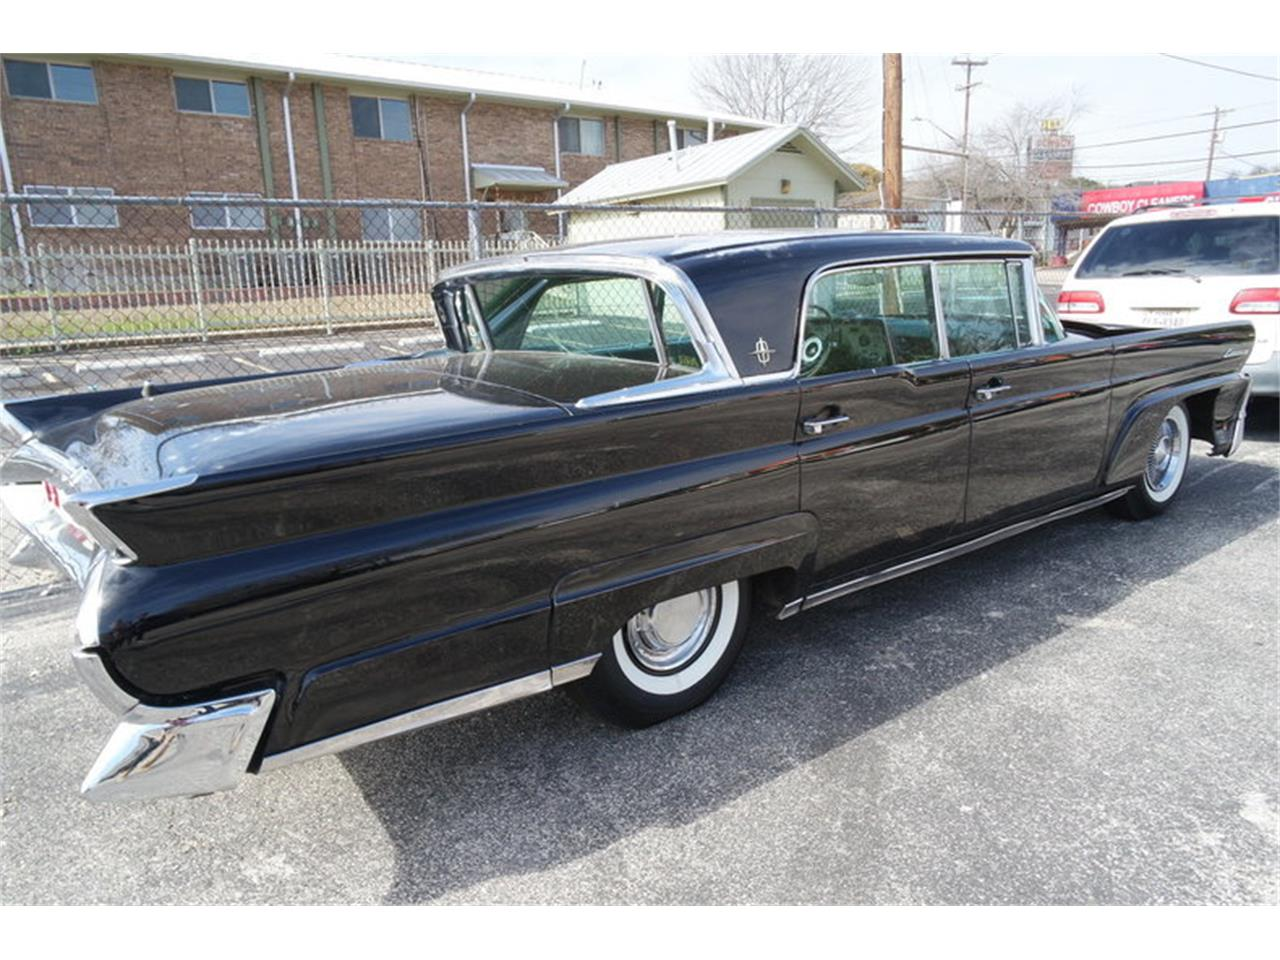 1953 Lincoln Continental Mark Iii For Sale Cc Convertible Large Picture Of 53 N5uf